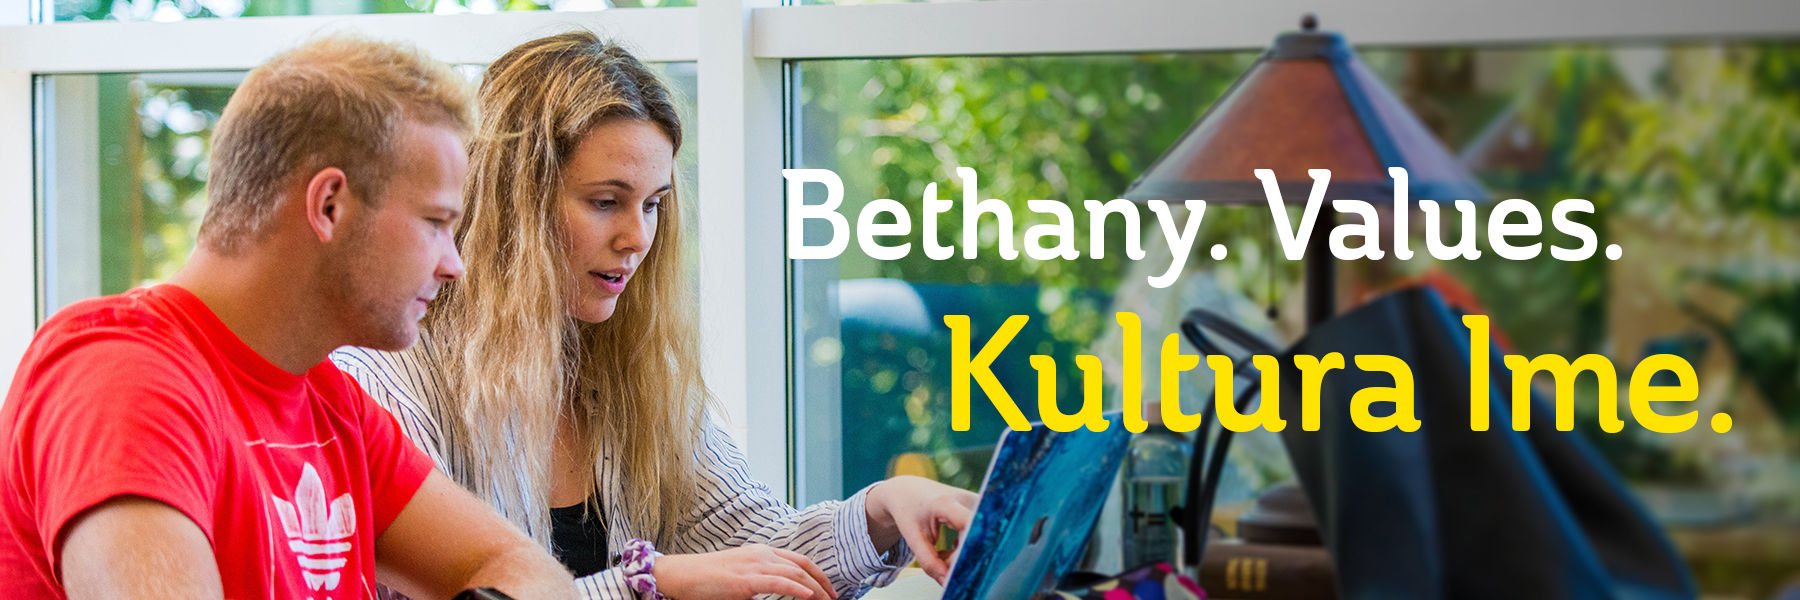 Bethany Values Kultura Ime